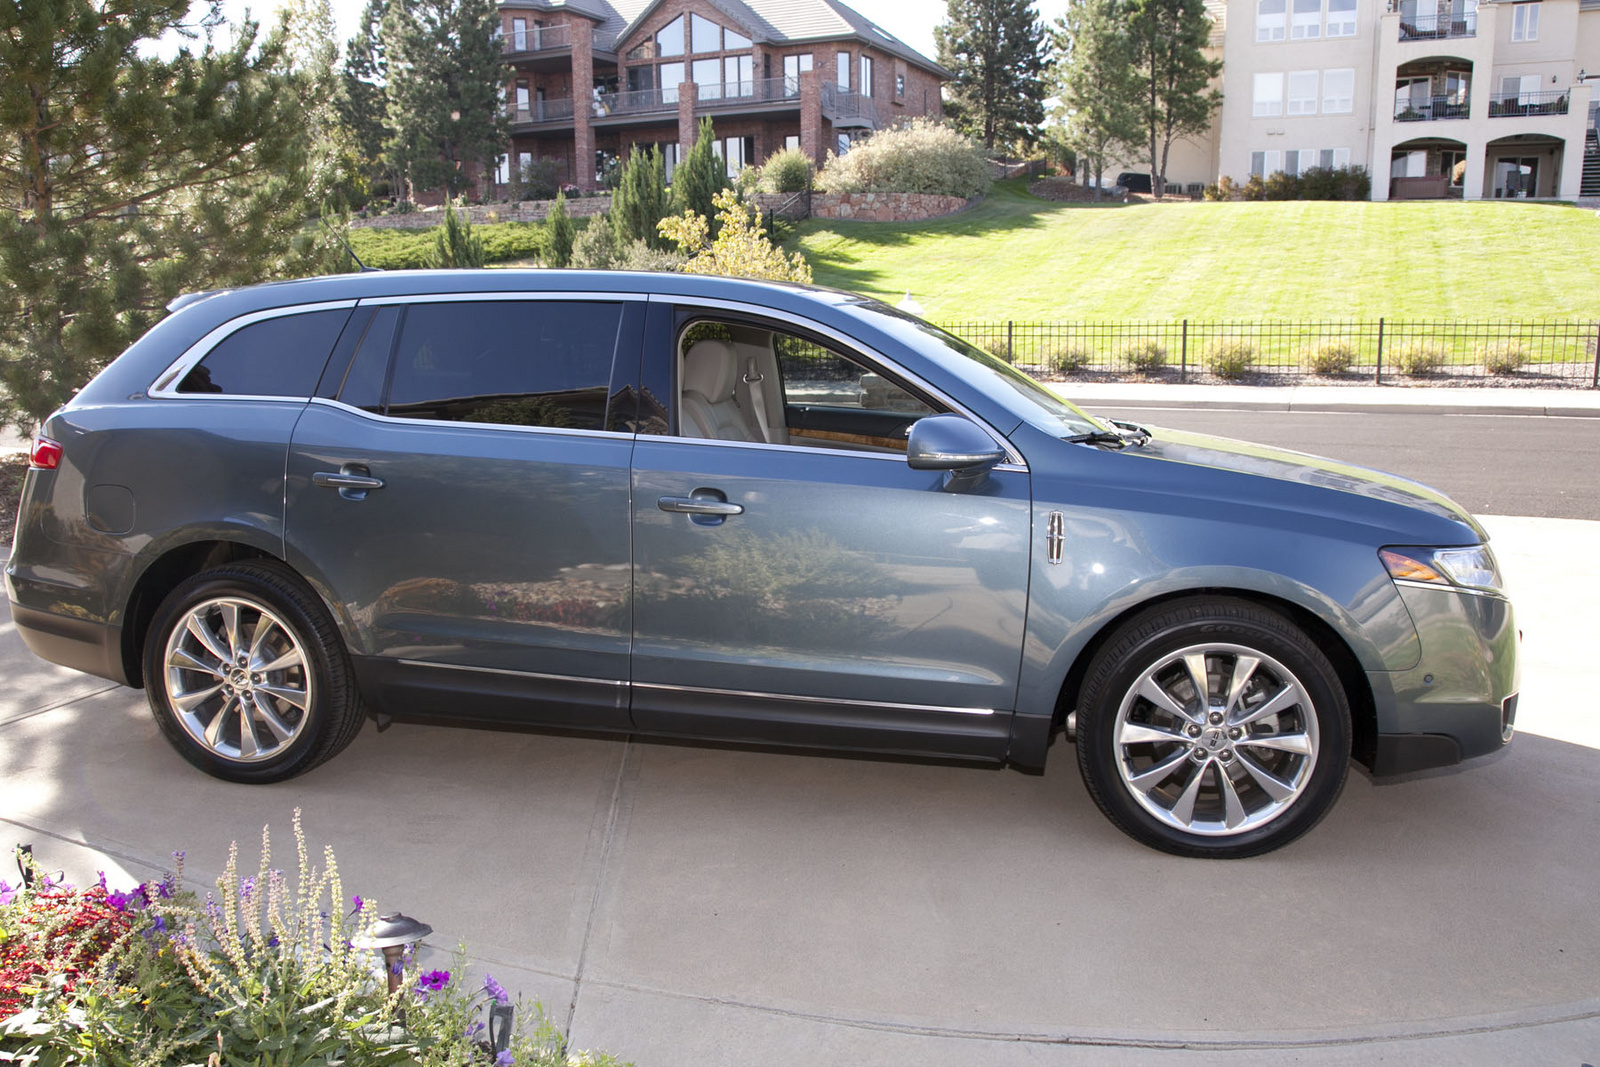 2010 Lincoln Mkx Problems Defects Complaints